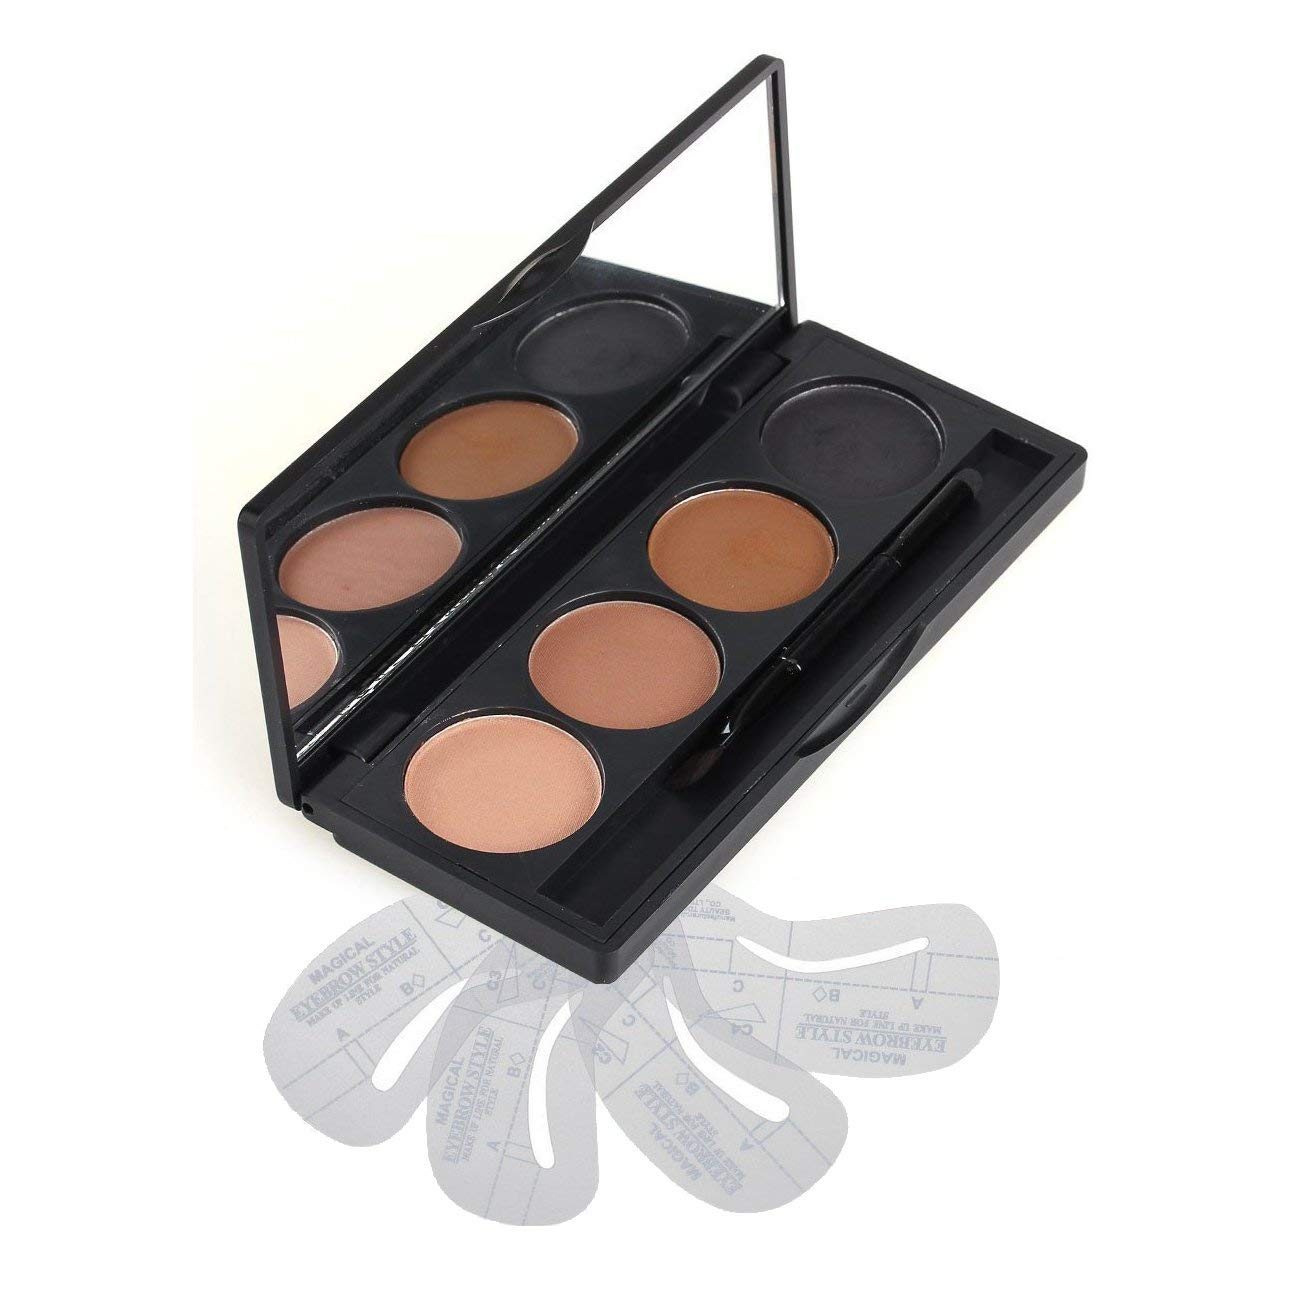 VONISA Makeup Powder 4 Colour Eyebrow Kit-Eye Brow Tint Palette -Beauty Cosmetics Light Brown Brow Dye for Nose Shaded-Professional Make Up Eye Brows Filler+4 Eyebrow Shaping Stencils+ Eyebrow Brush